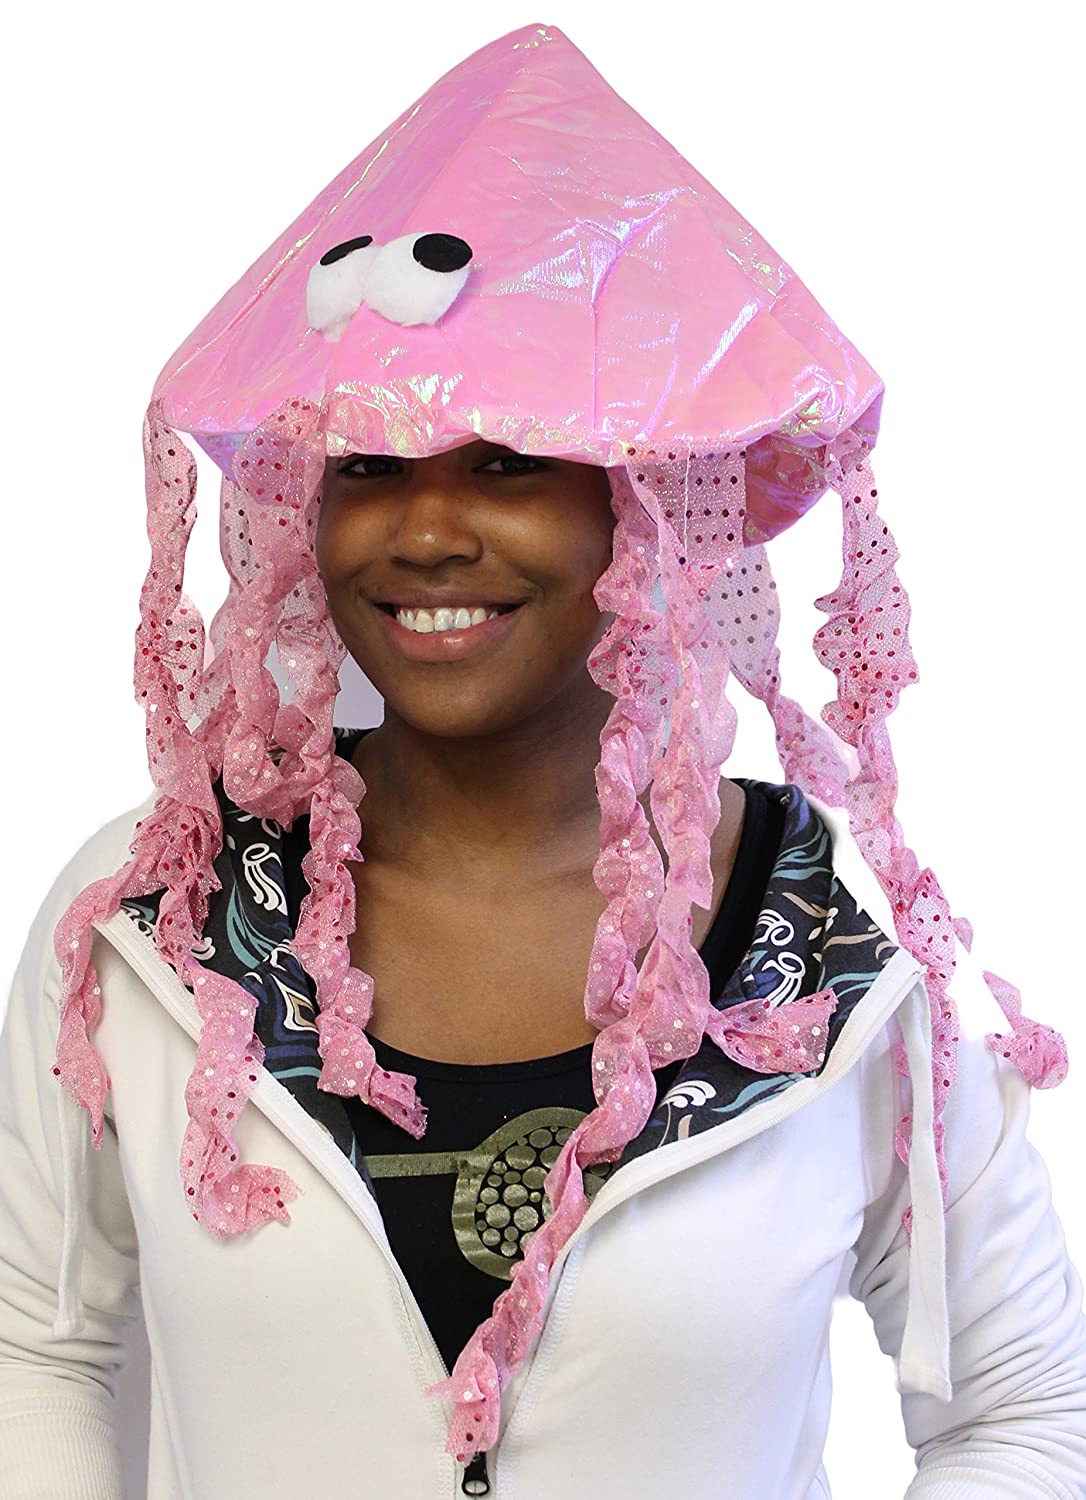 Costume Accessory -Iridescent Novelty Jellyfish Hat (One size fits most) Jacobson Hat Company P0-MRT1-UQYW